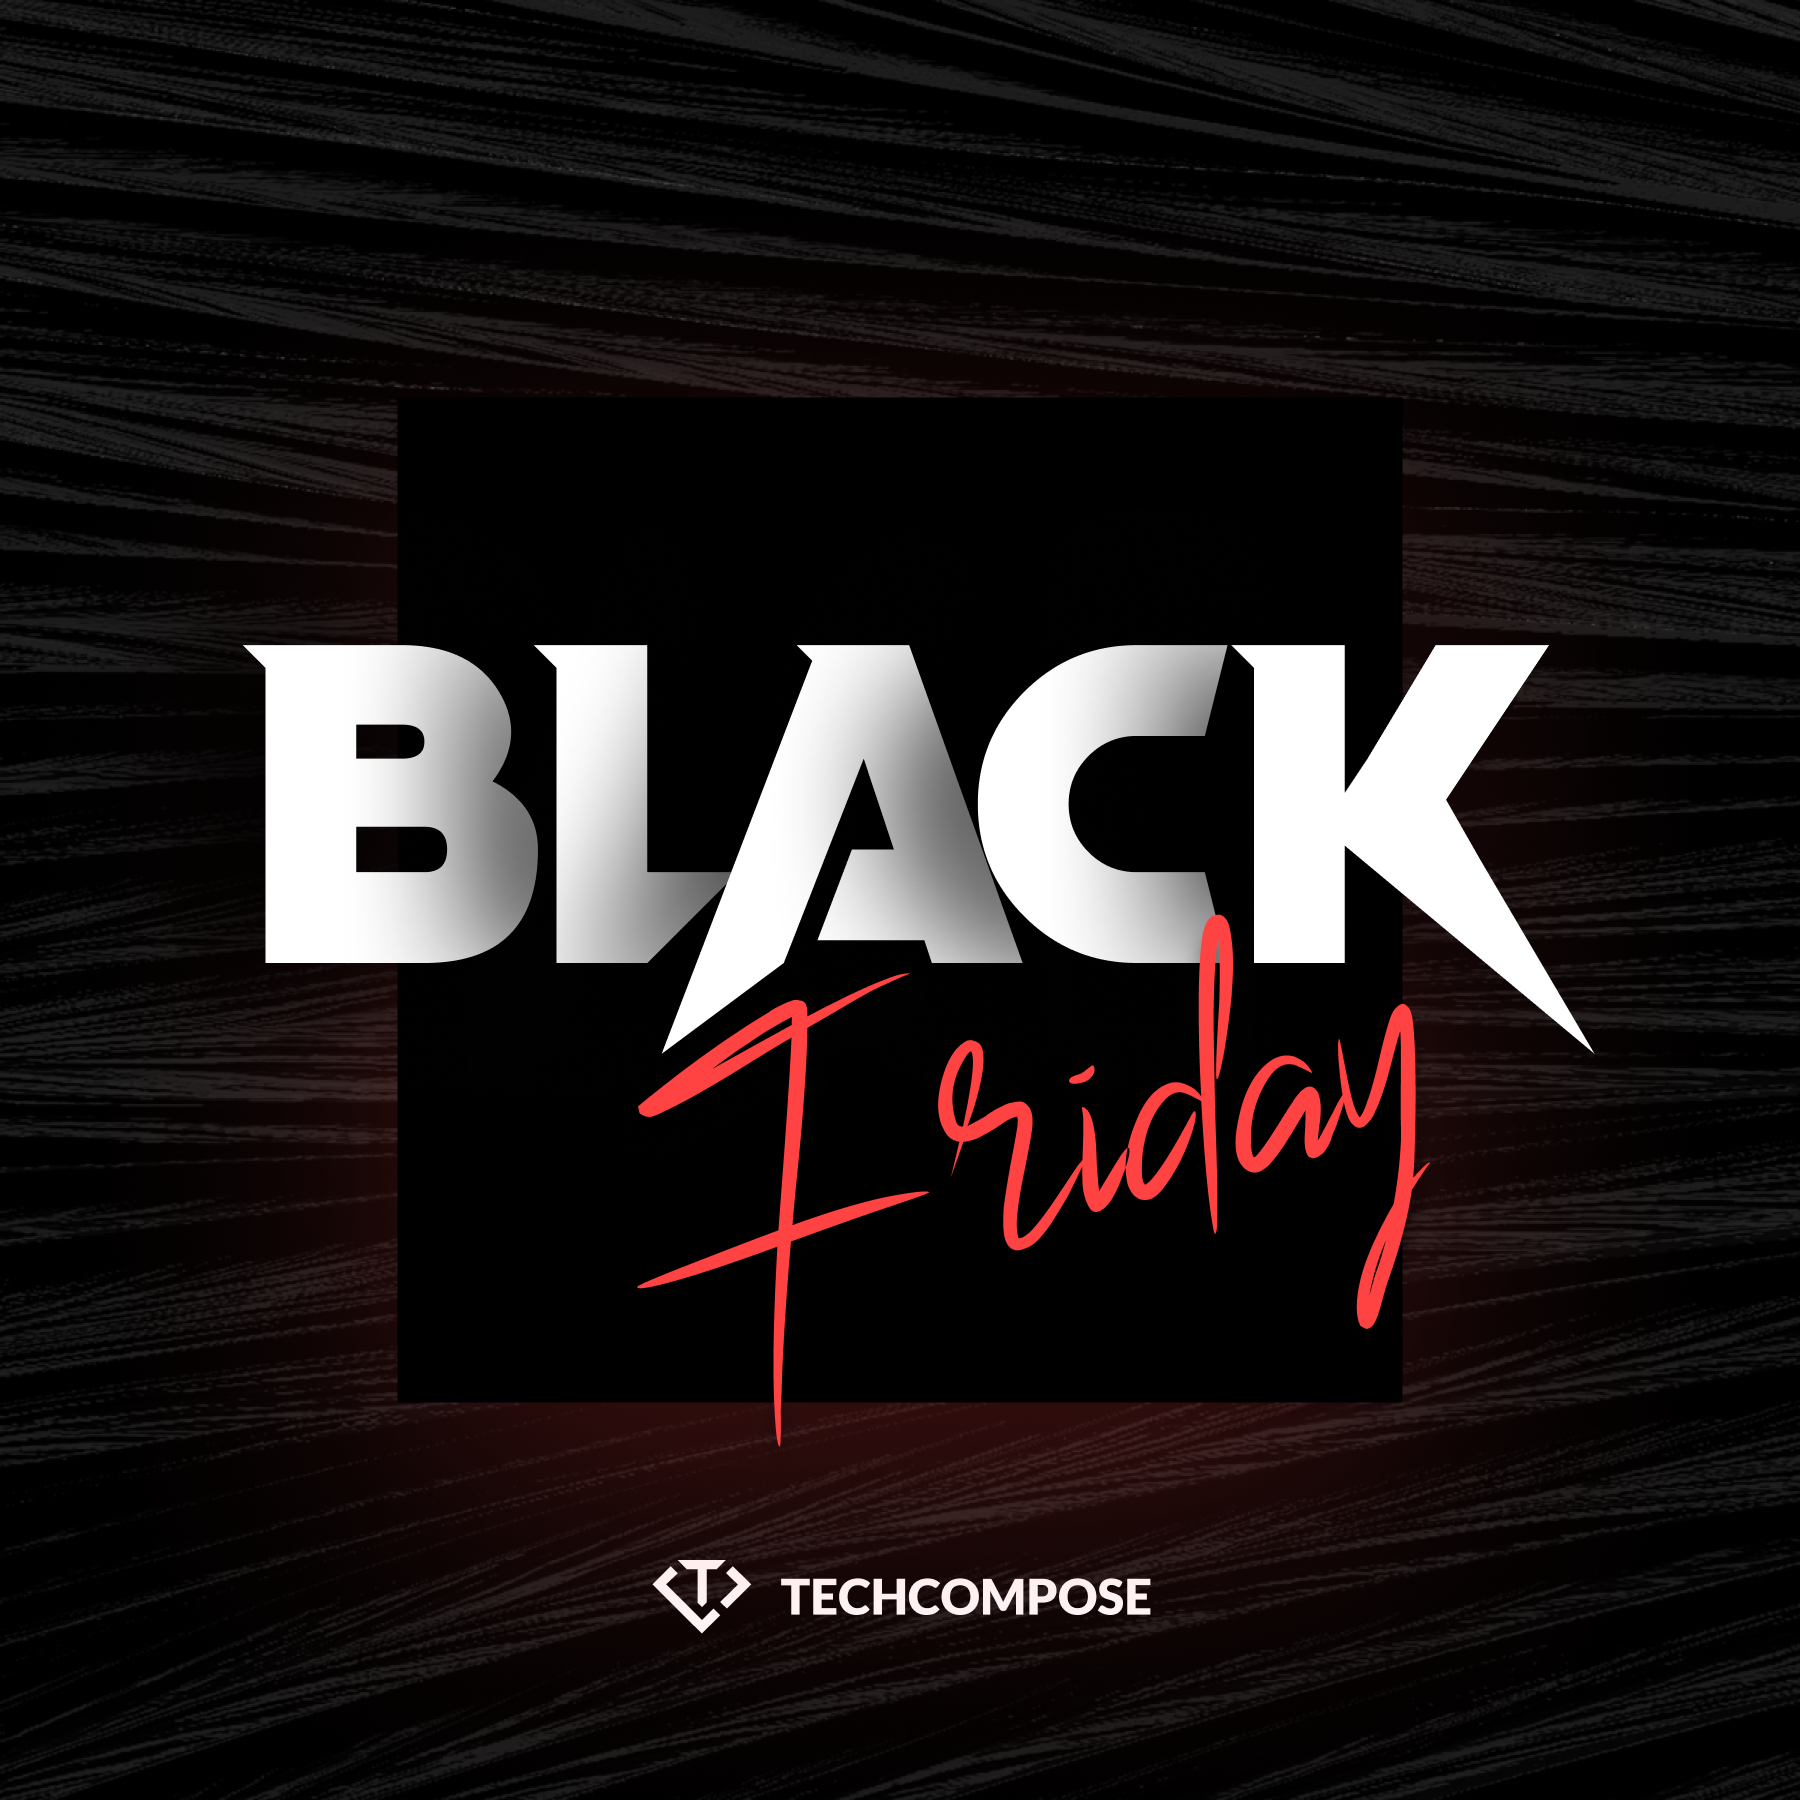 Black Friday Tech company logos, Company logo, Black